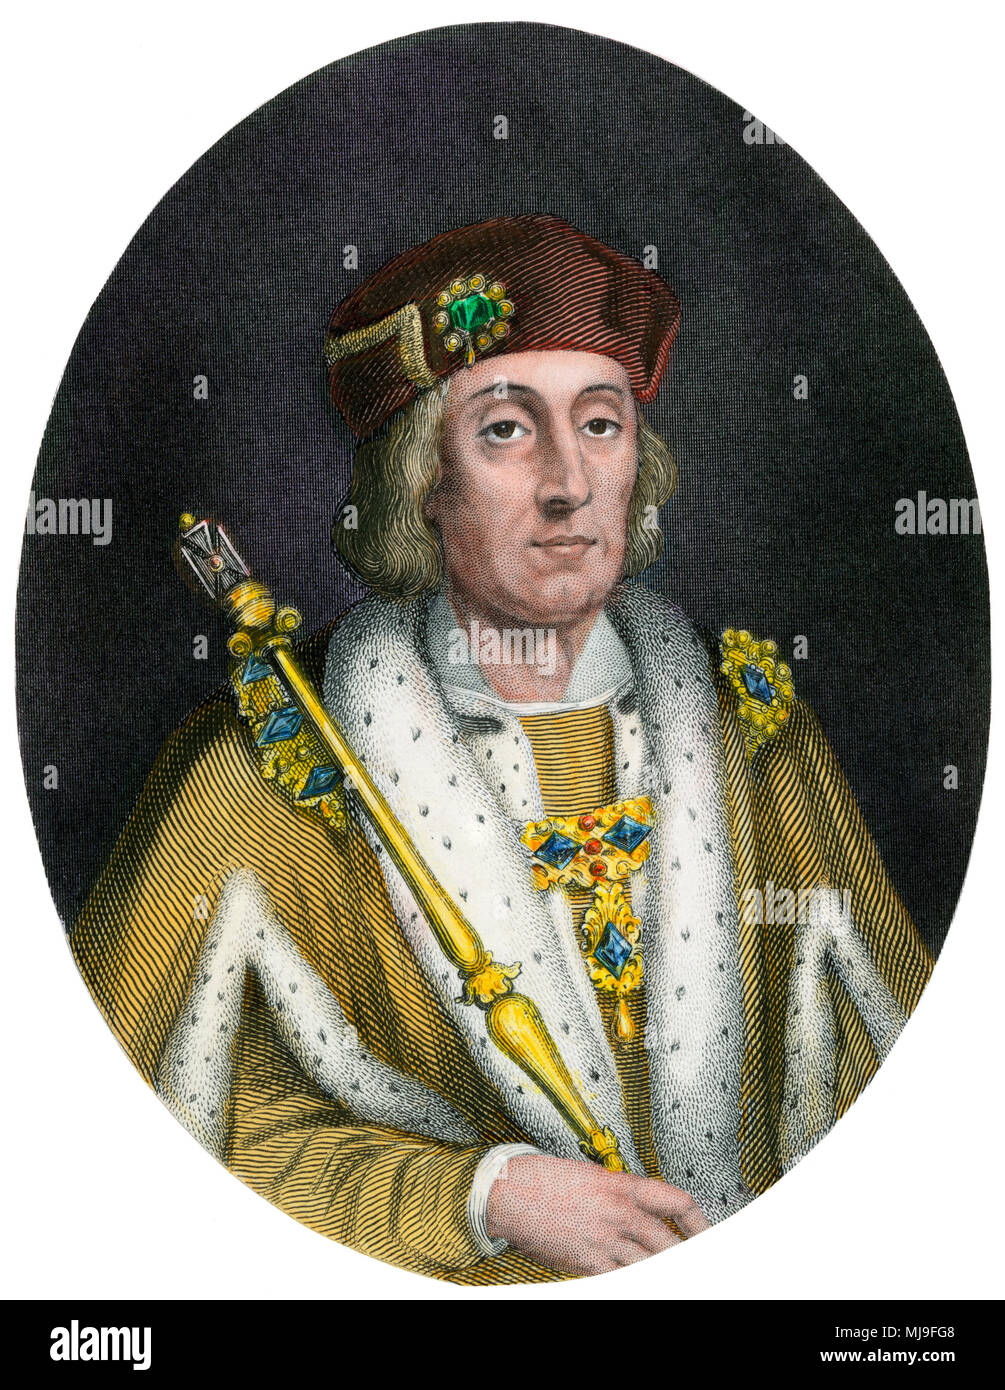 Henry VII, or Henry Tudor, King of England 1457-1509. Hand-colored engraving - Stock Image